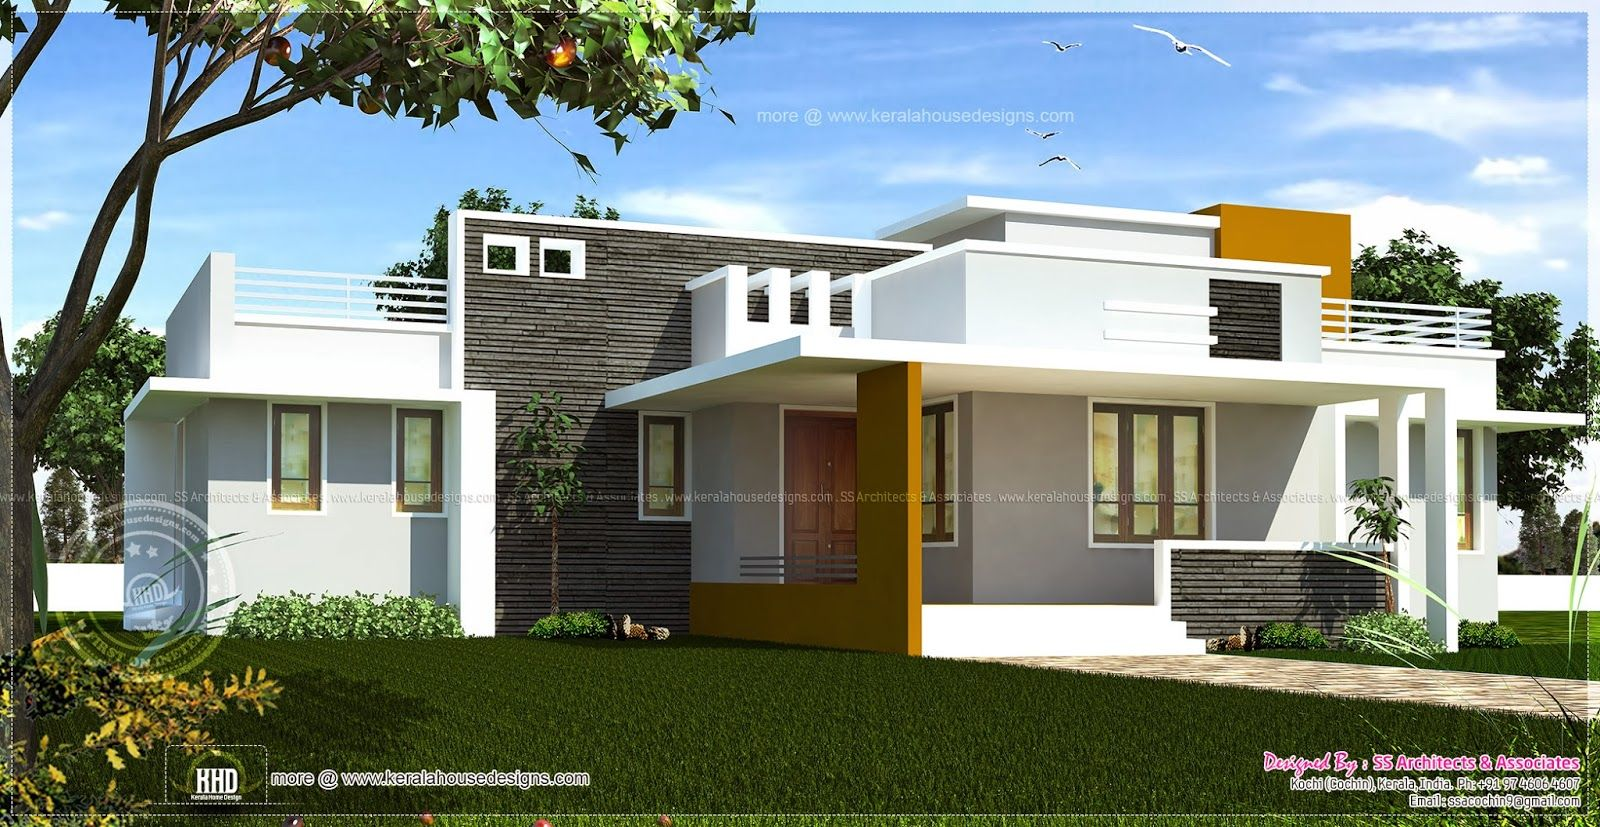 Excellent single home designs single floor contemporary for Kerala home designs contemporary